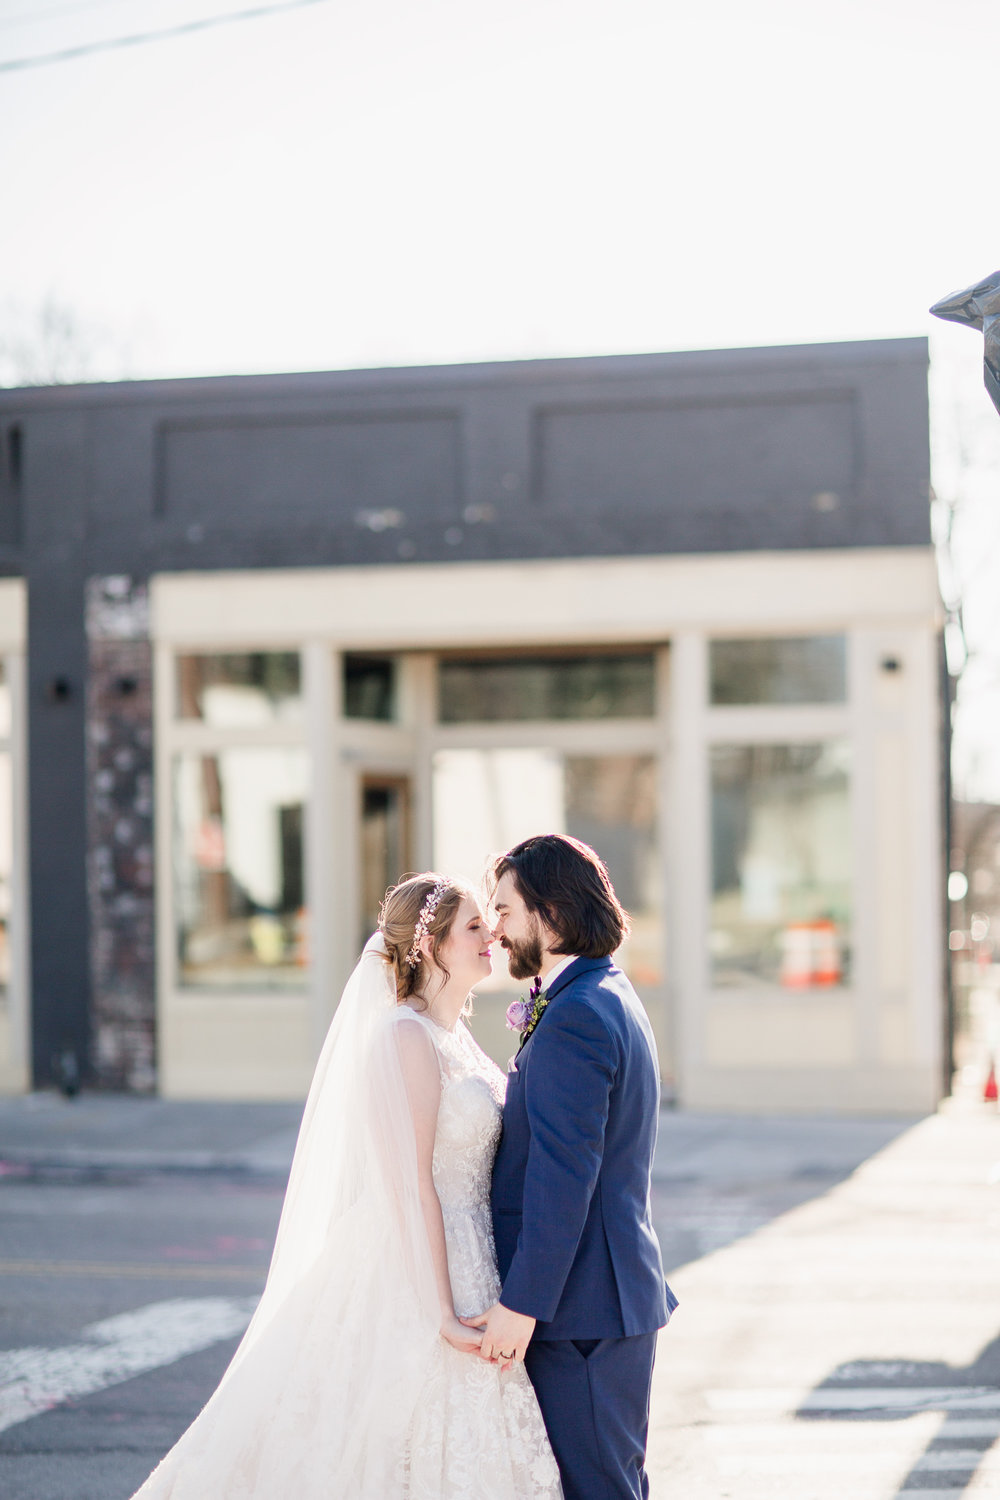 Downtown Knoxville Wedding Venue // Central Avenue Reception // Bridesmaids // Bride & Groom Portraits